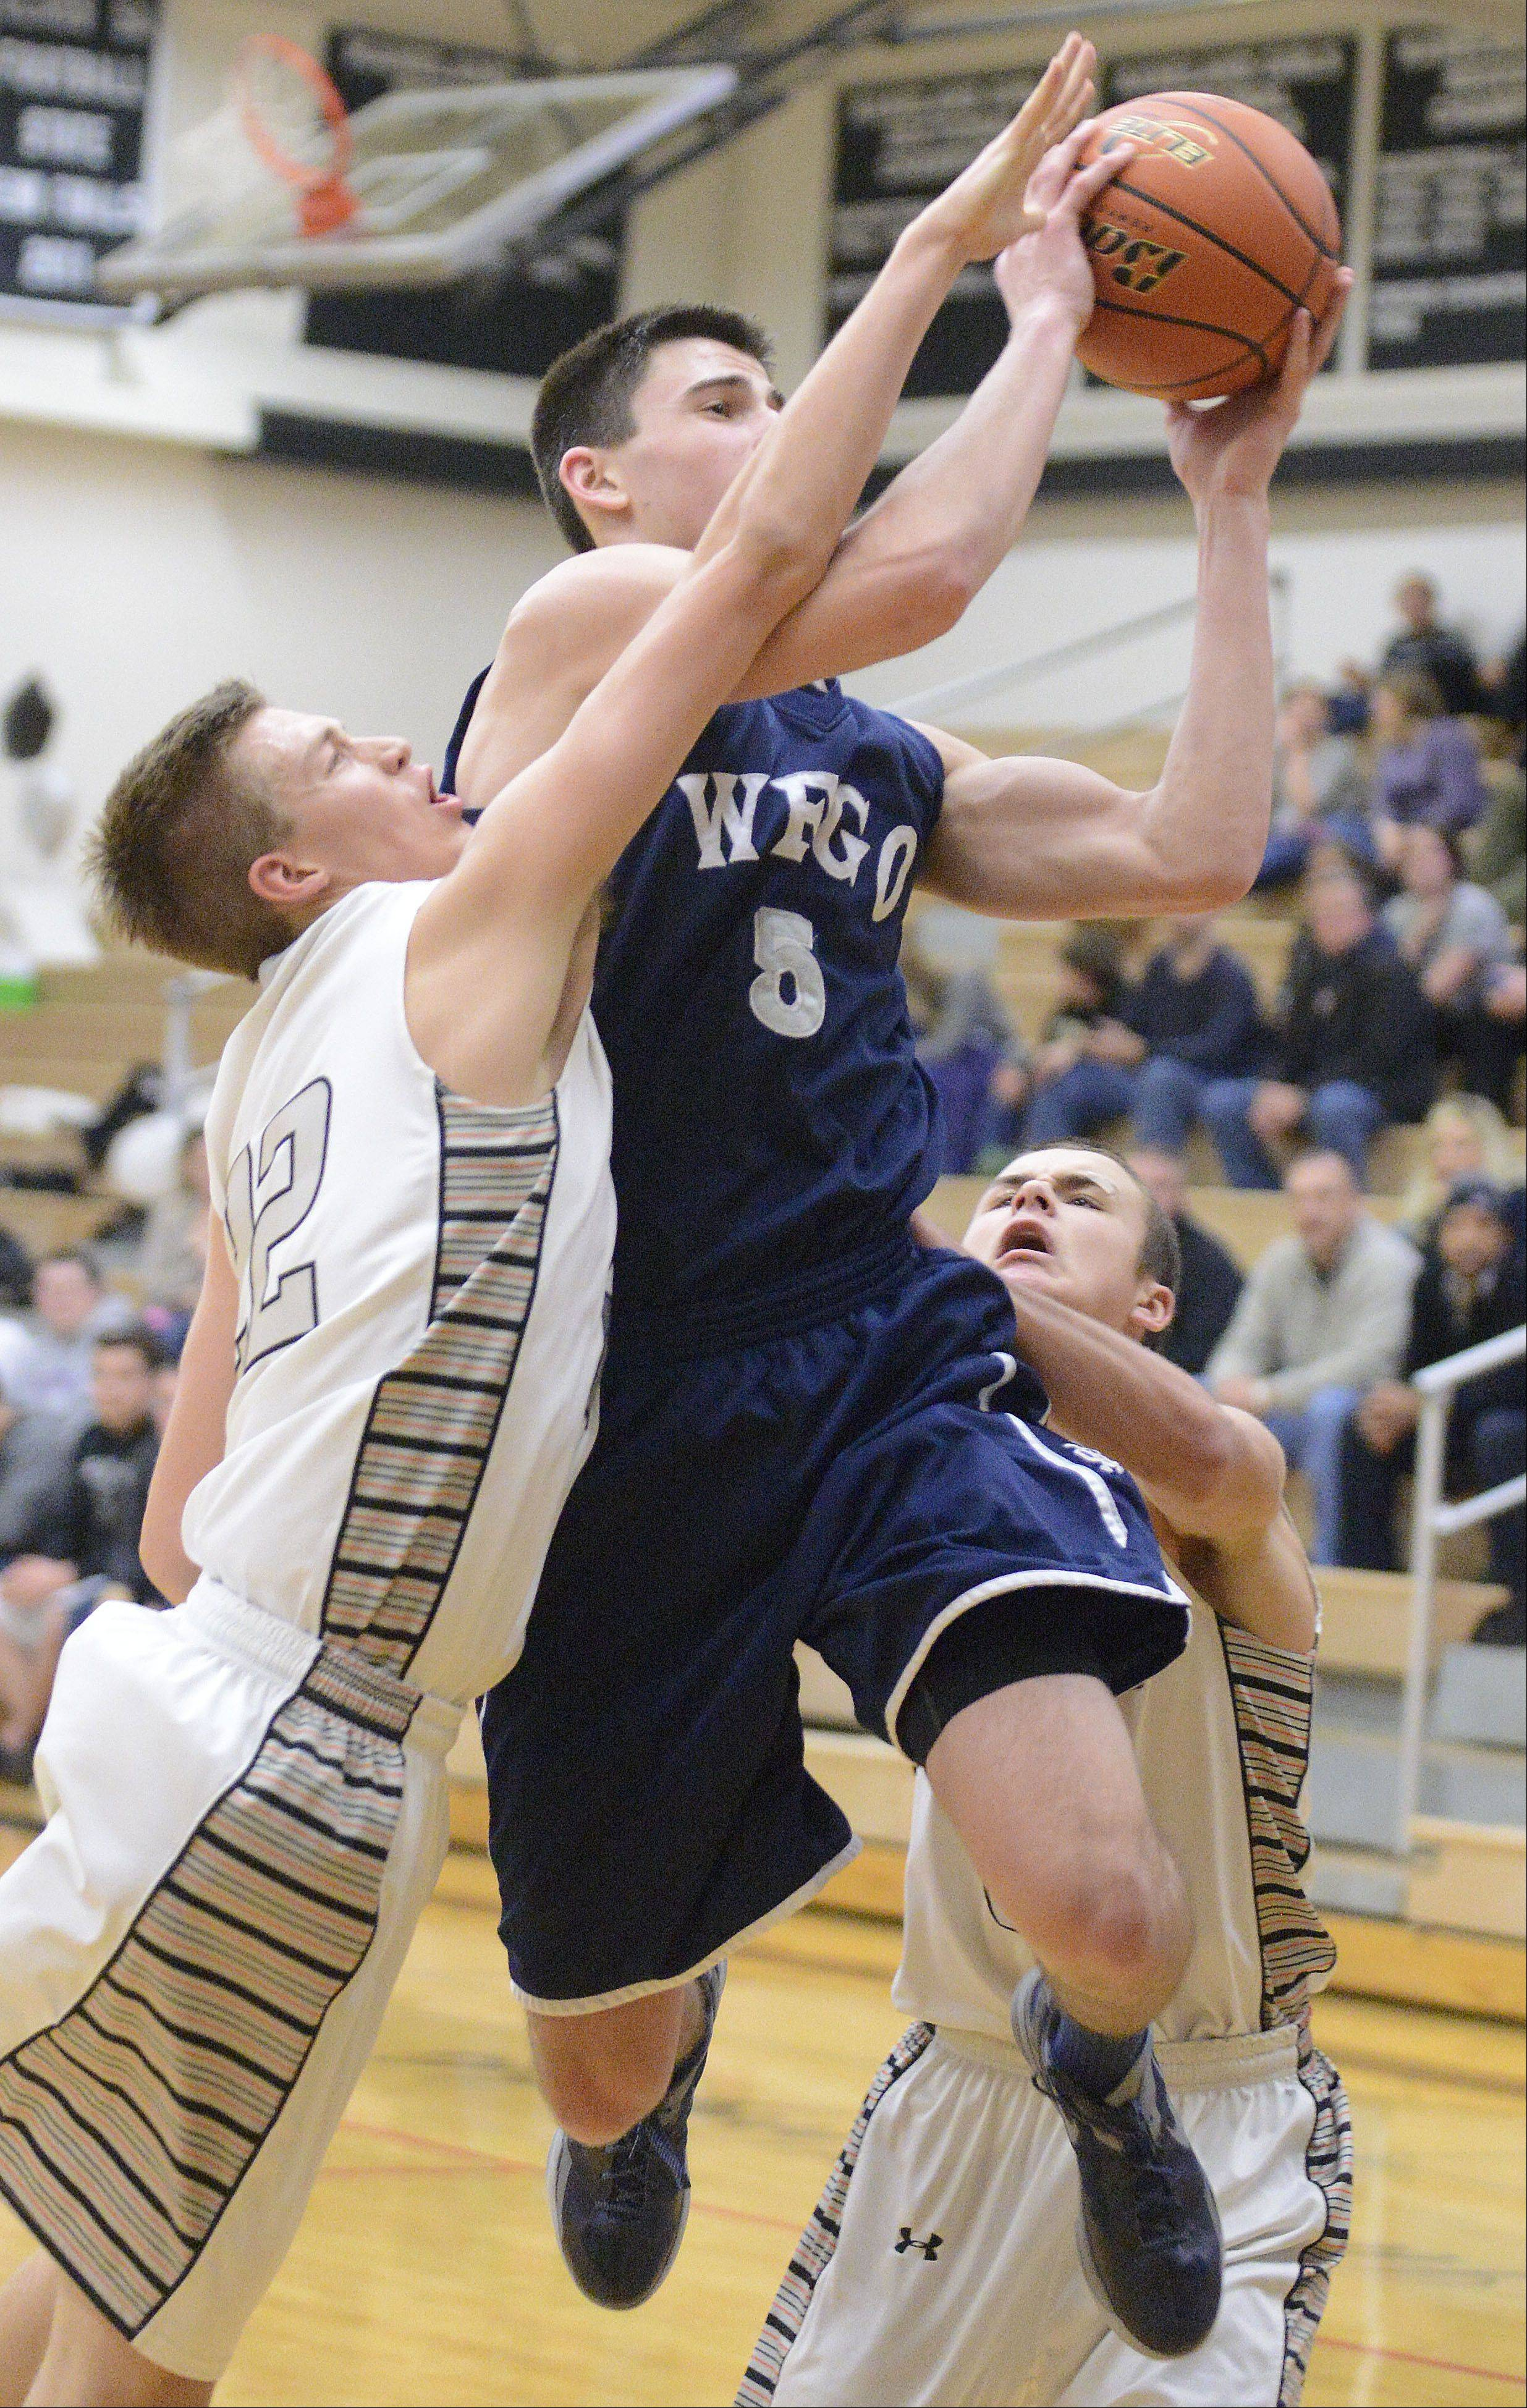 Images from the West Chicago vs. Kaneland boys basketball game, Tuesday February 5, 2013.